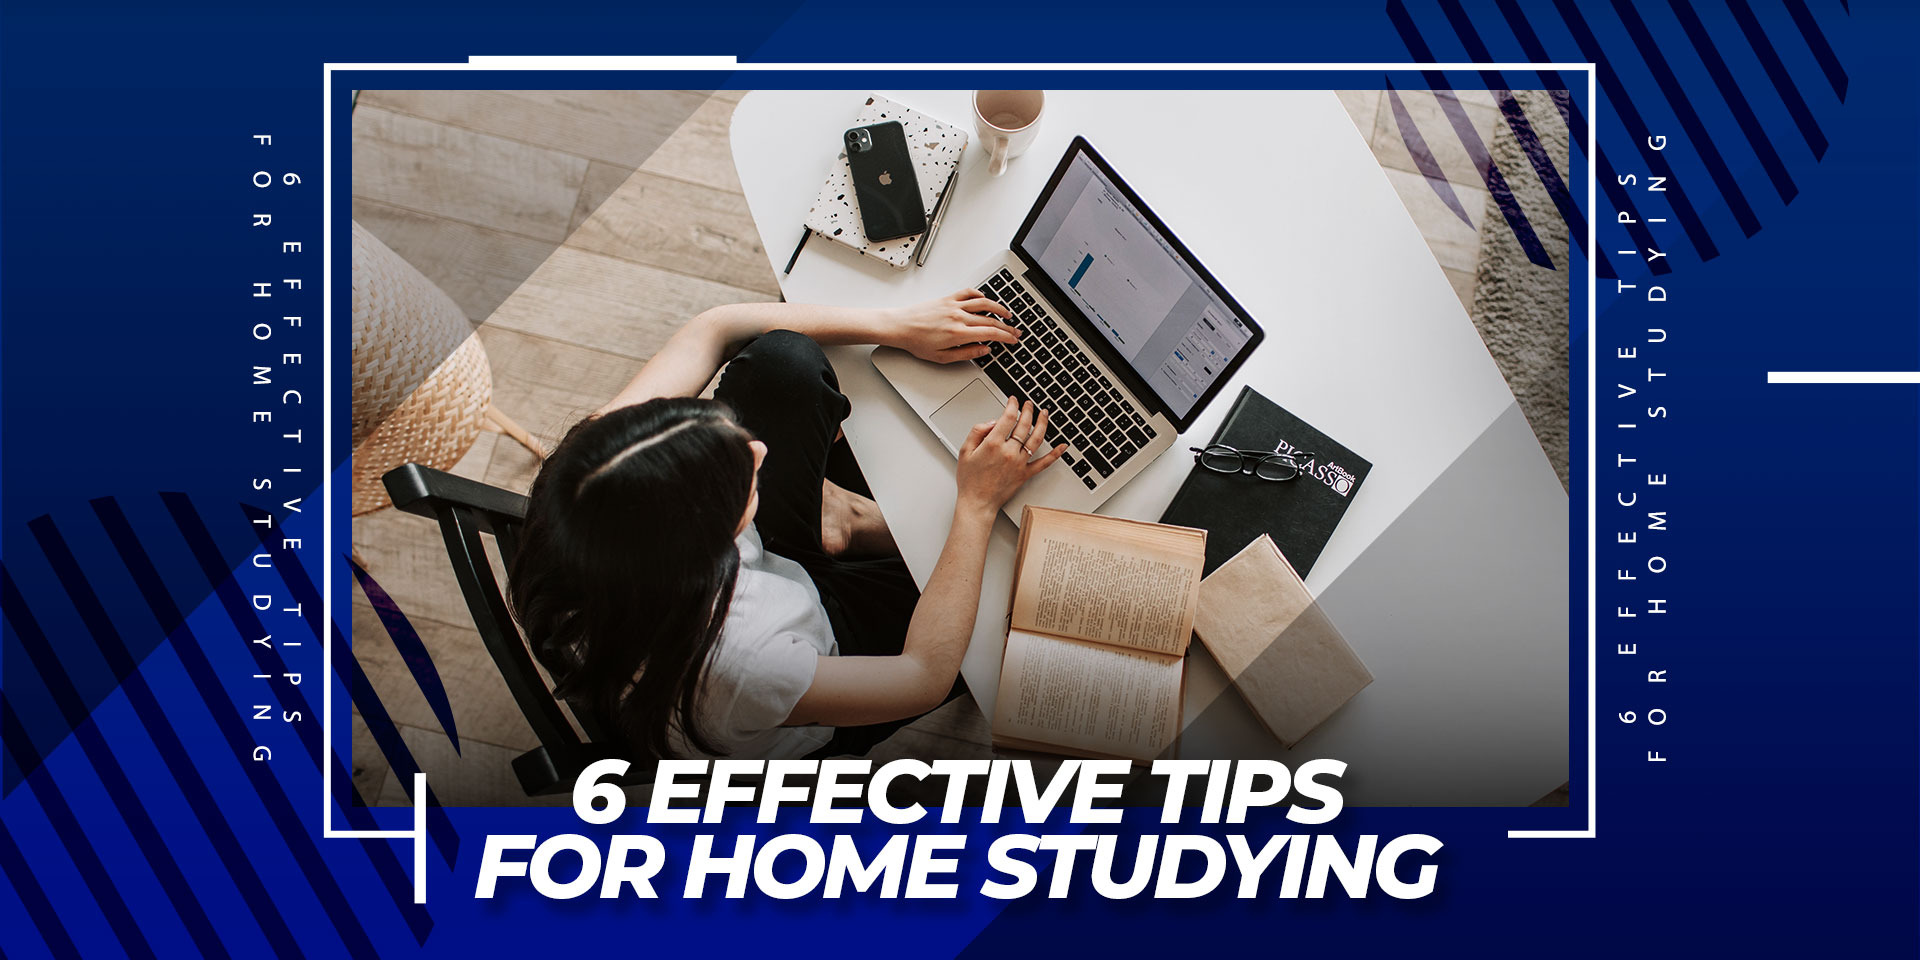 6 Effective Tips for Home Studying